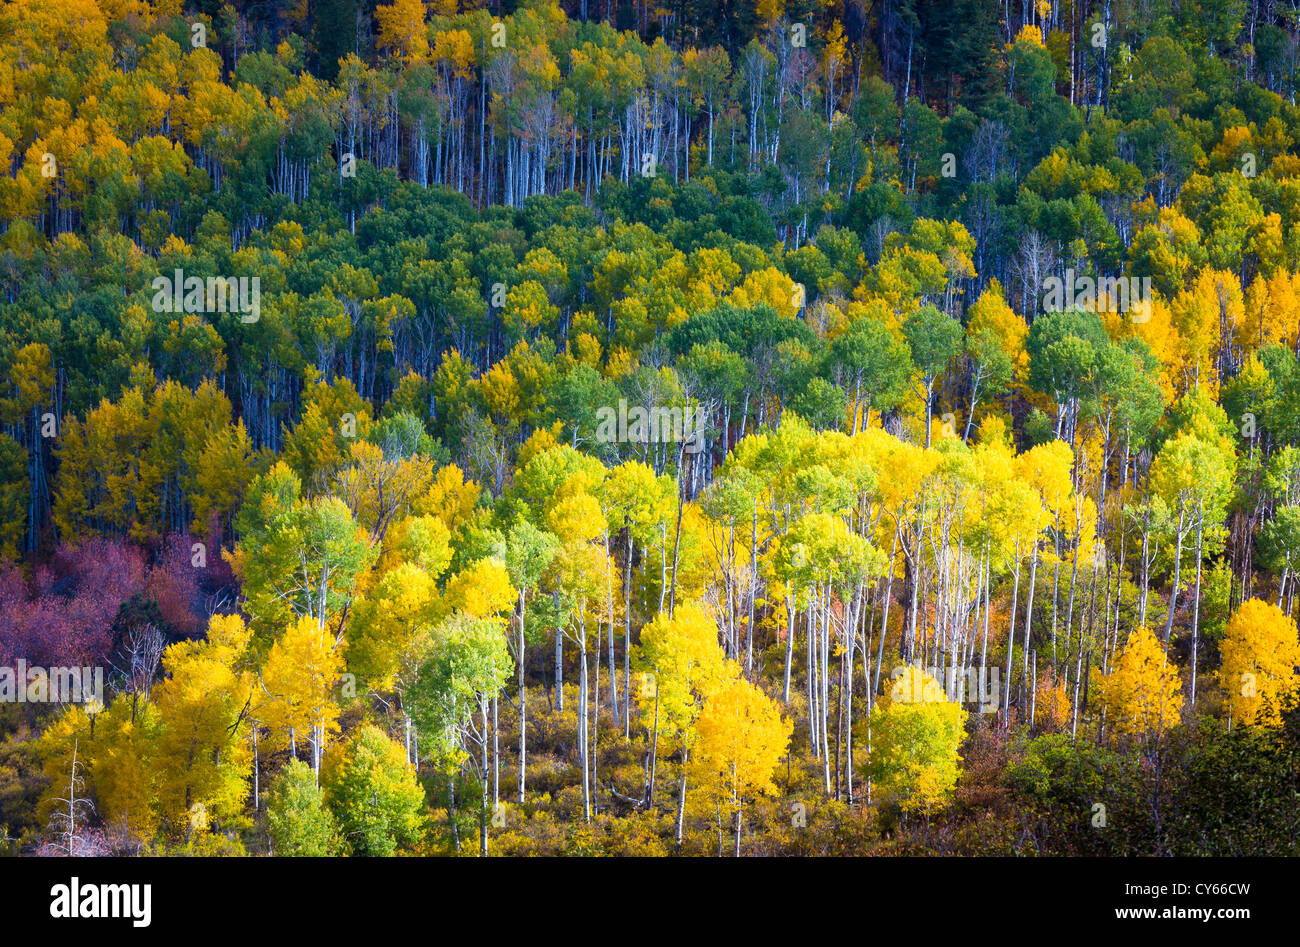 Aspens on hillside in the San Juan mountains of Colorado - Stock Image